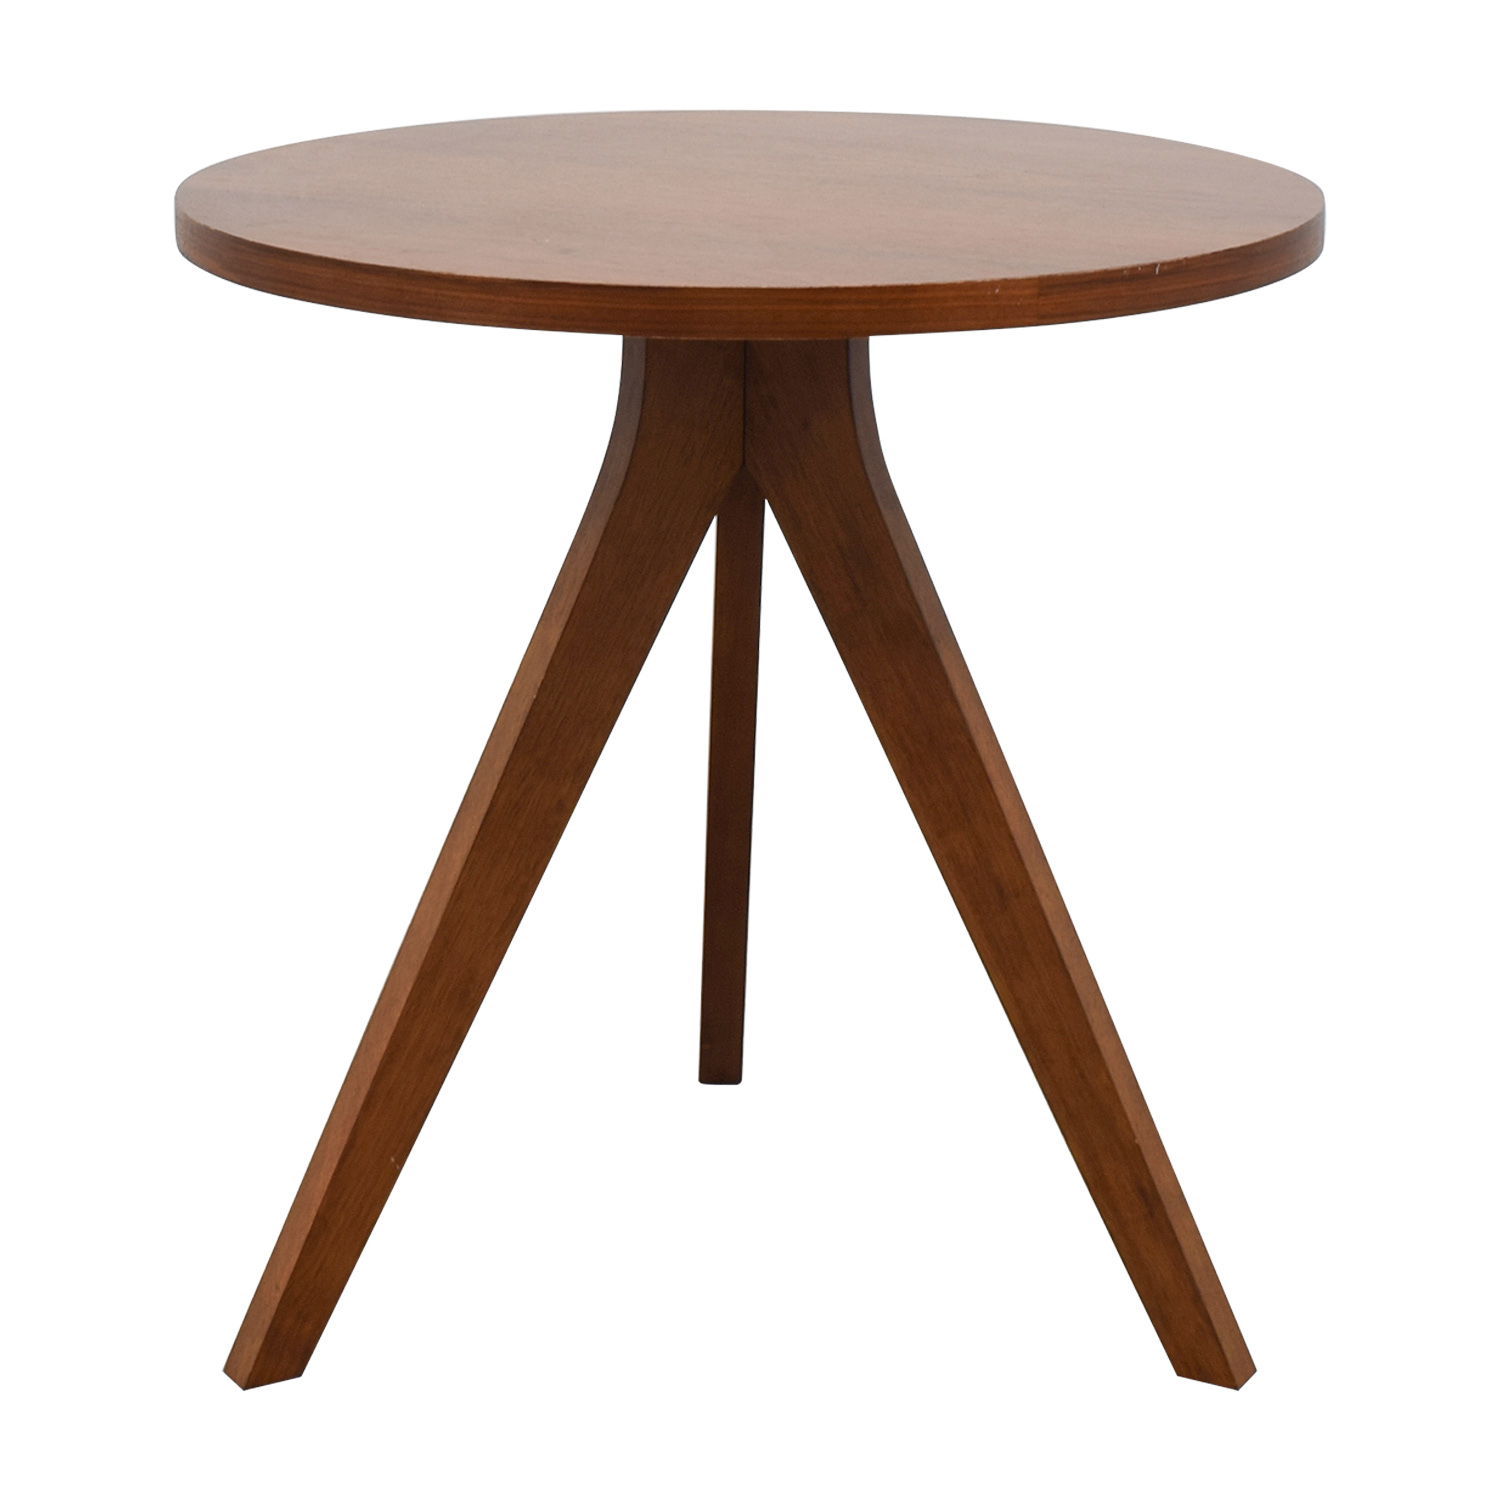 West Elm West Elm Walnut Tripod Table price